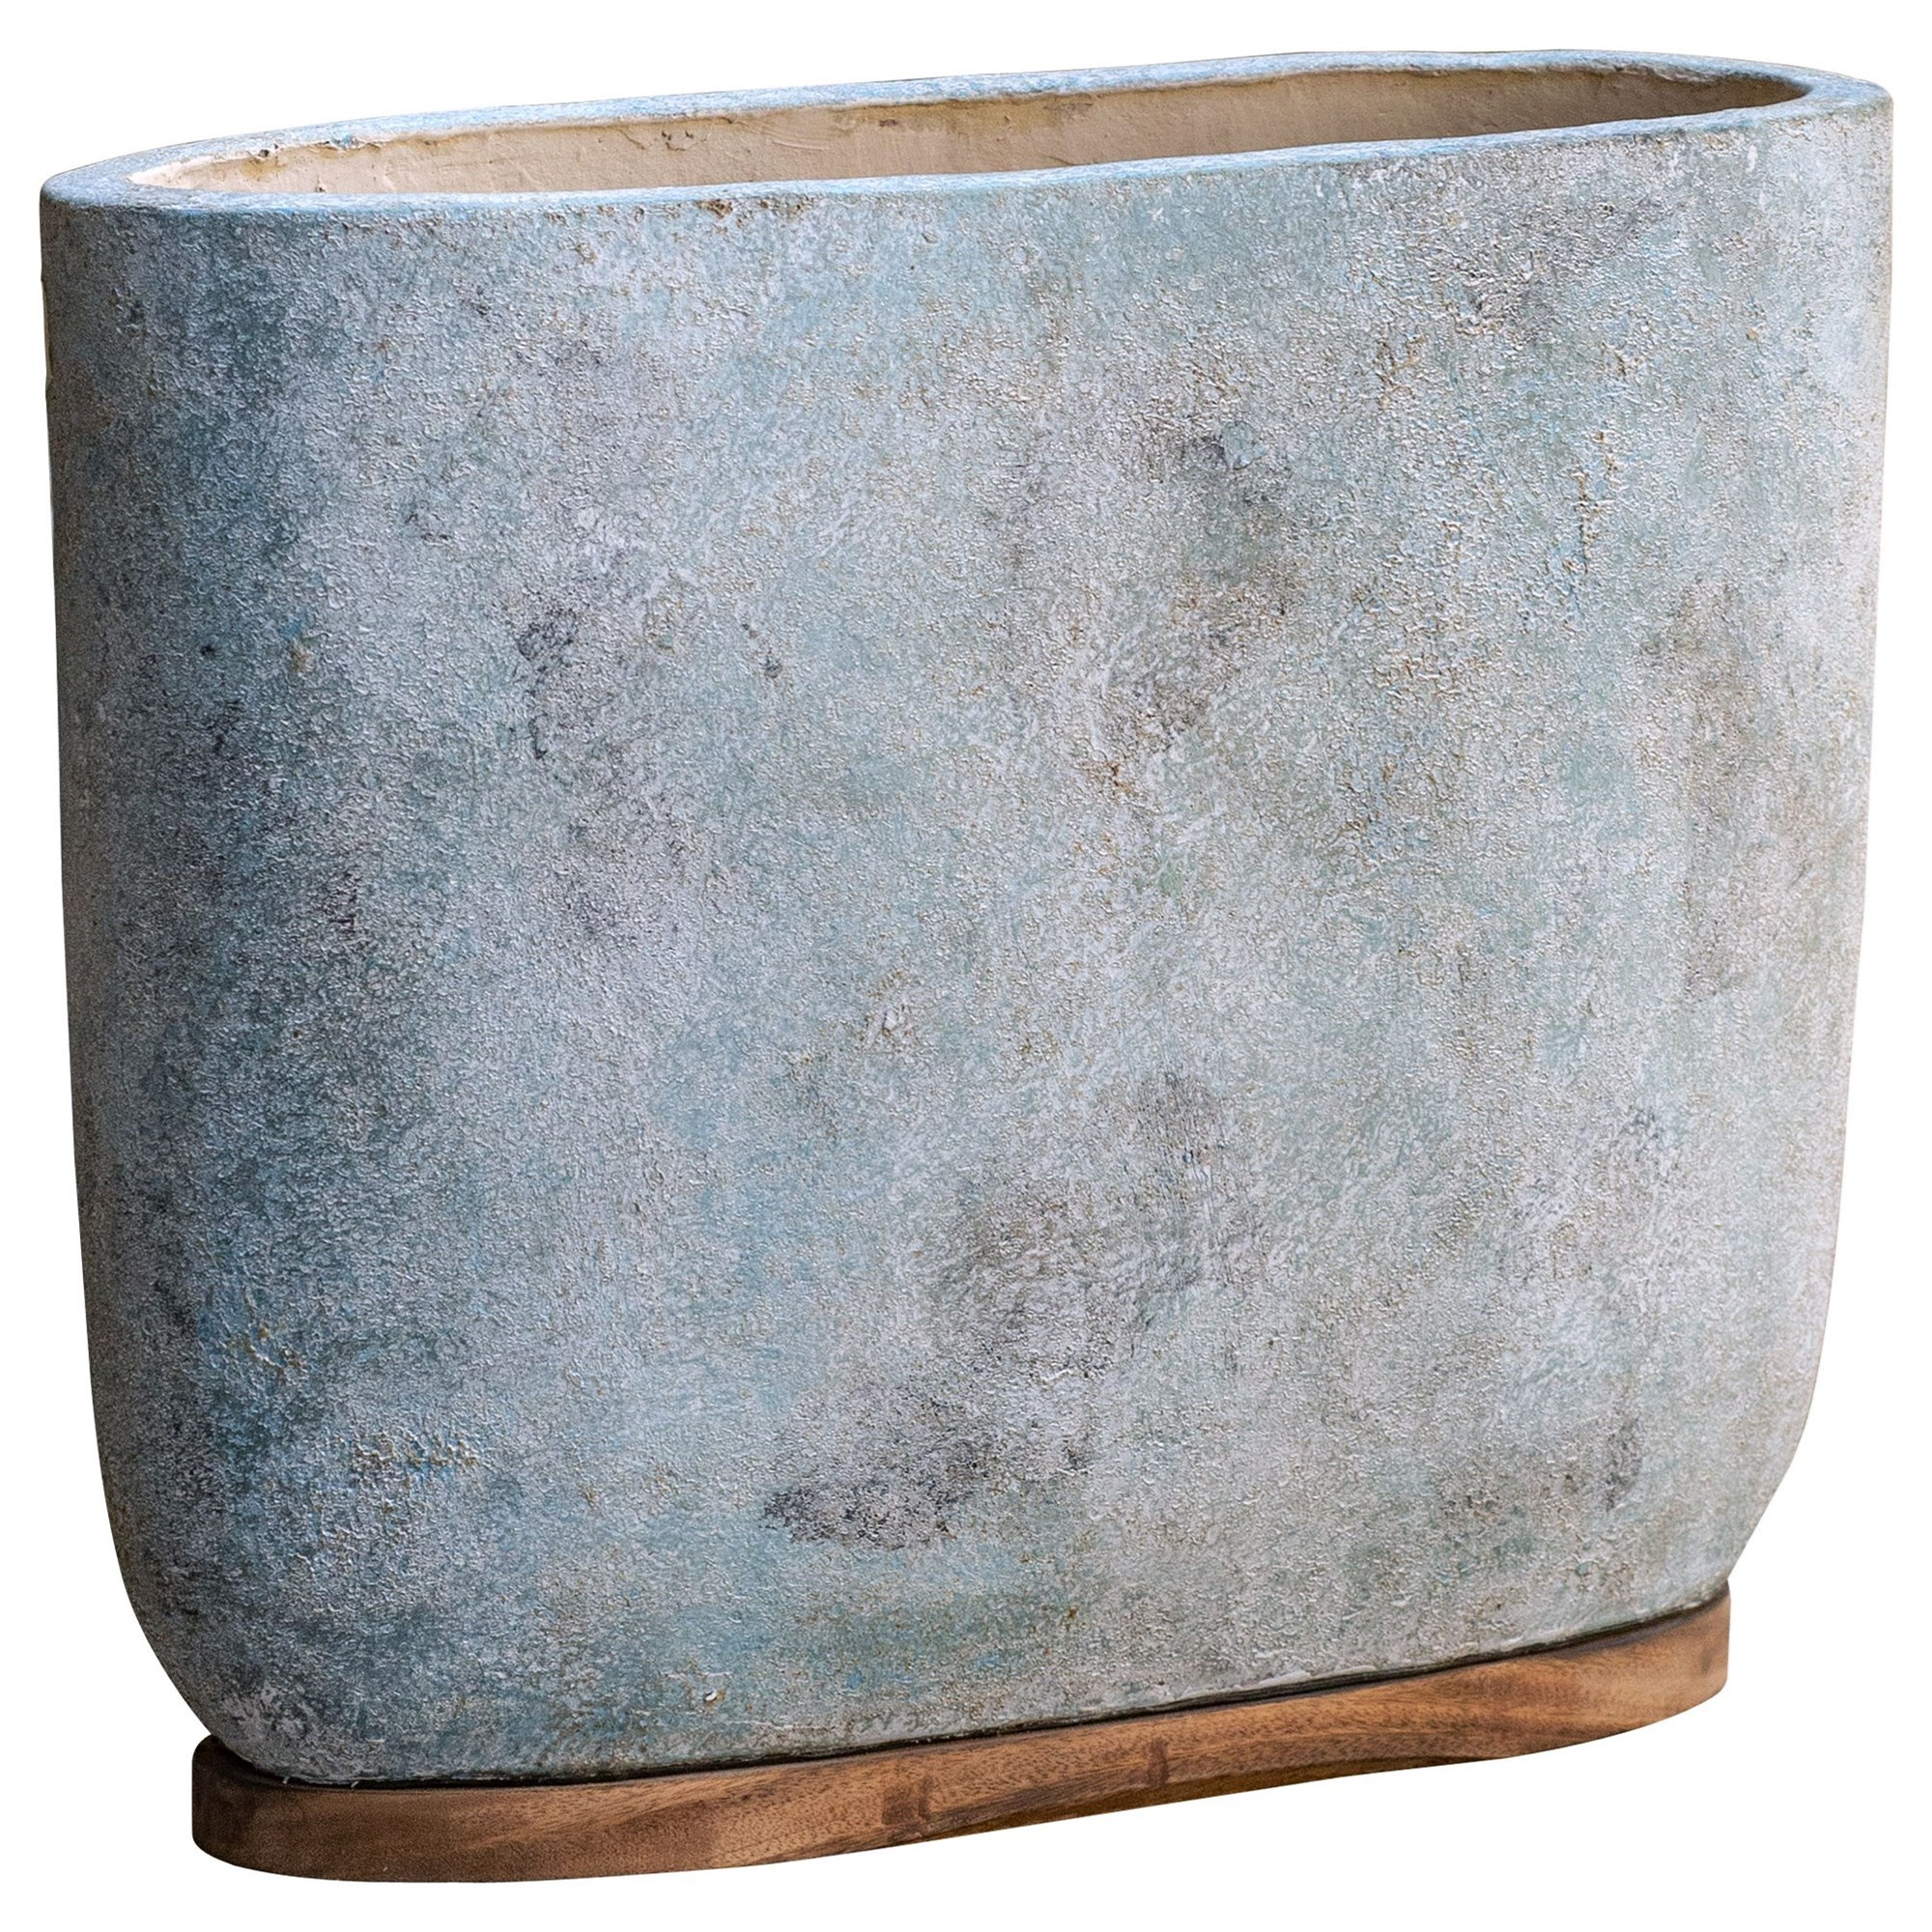 Accessories Menja Aged Bowl by Uttermost at Dunk & Bright Furniture